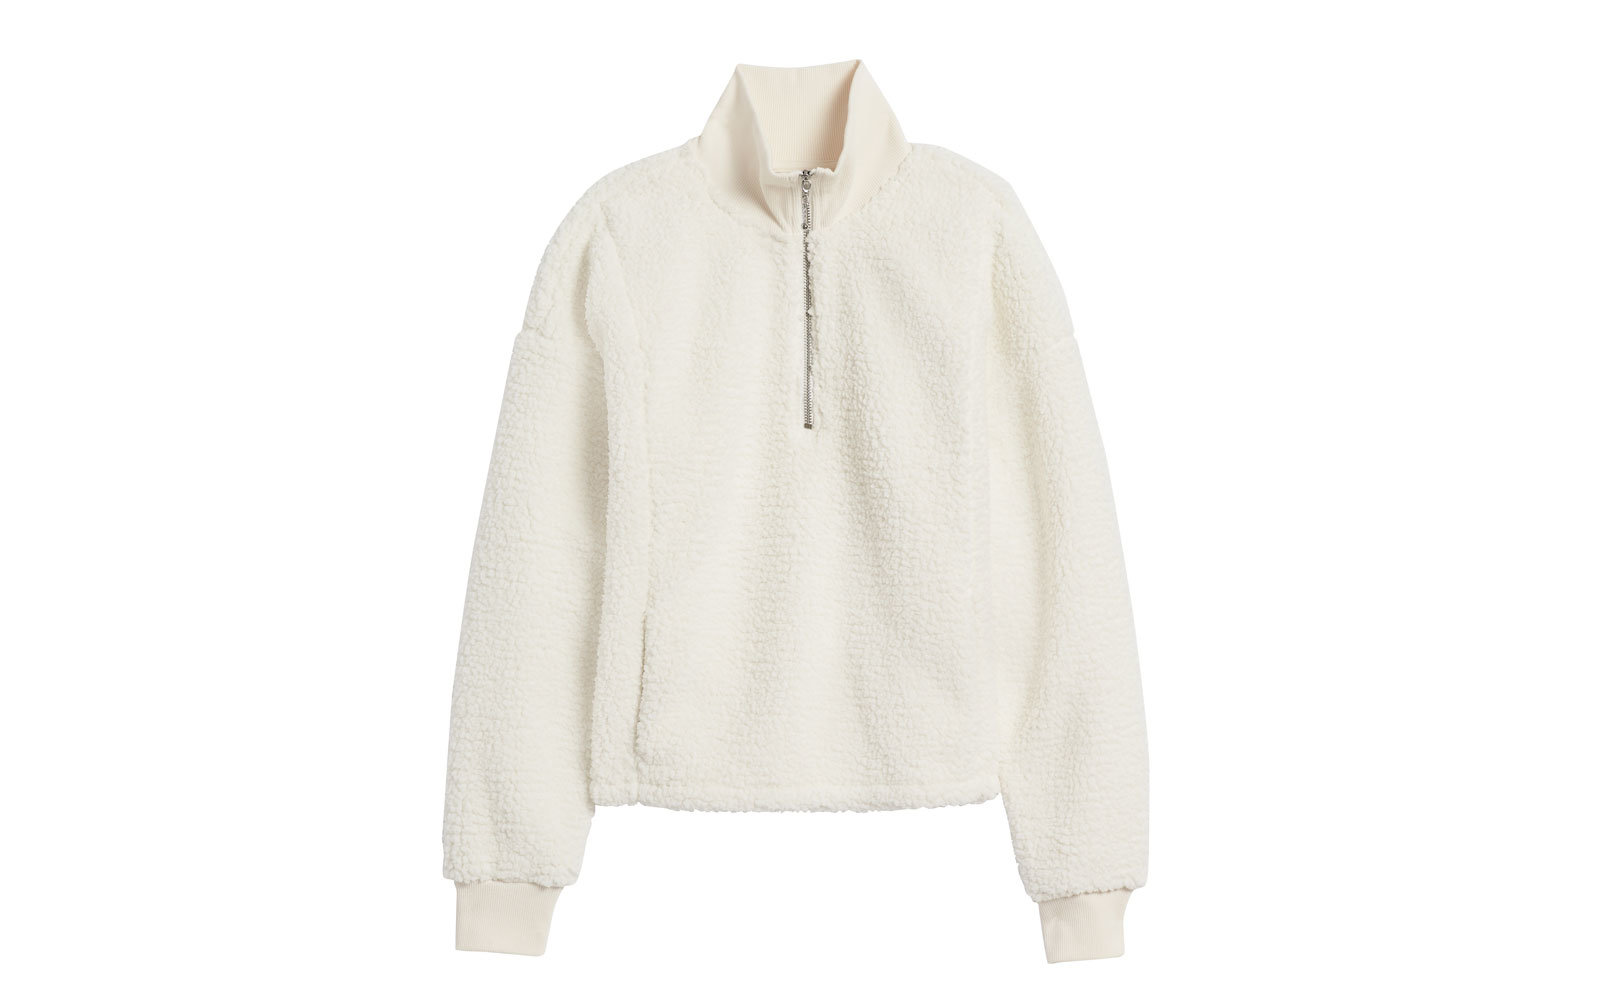 Banana Republic Sherpa Fleece Half-zip Sweatshirt